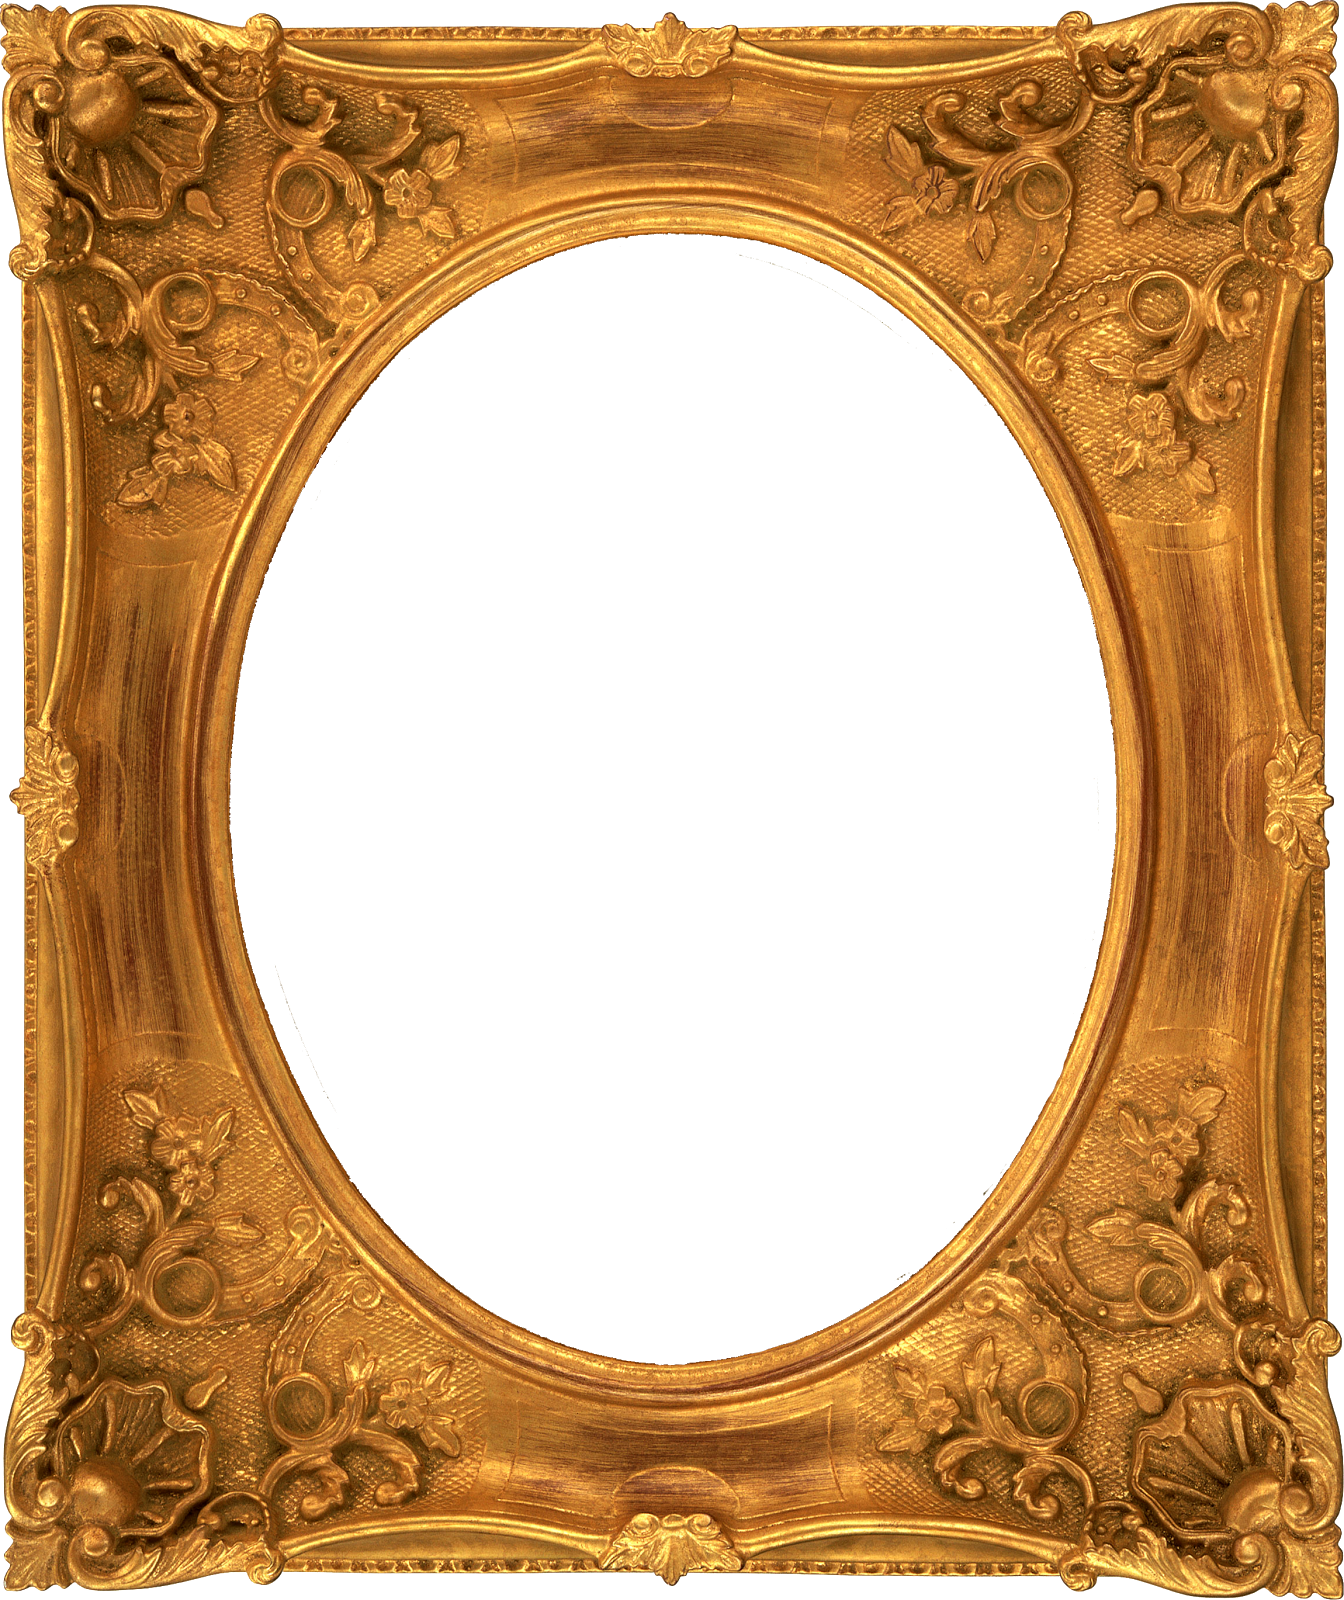 Freebie 4  Fancy Vintage Ornate Digital Frames Oval Vintage Frames Png